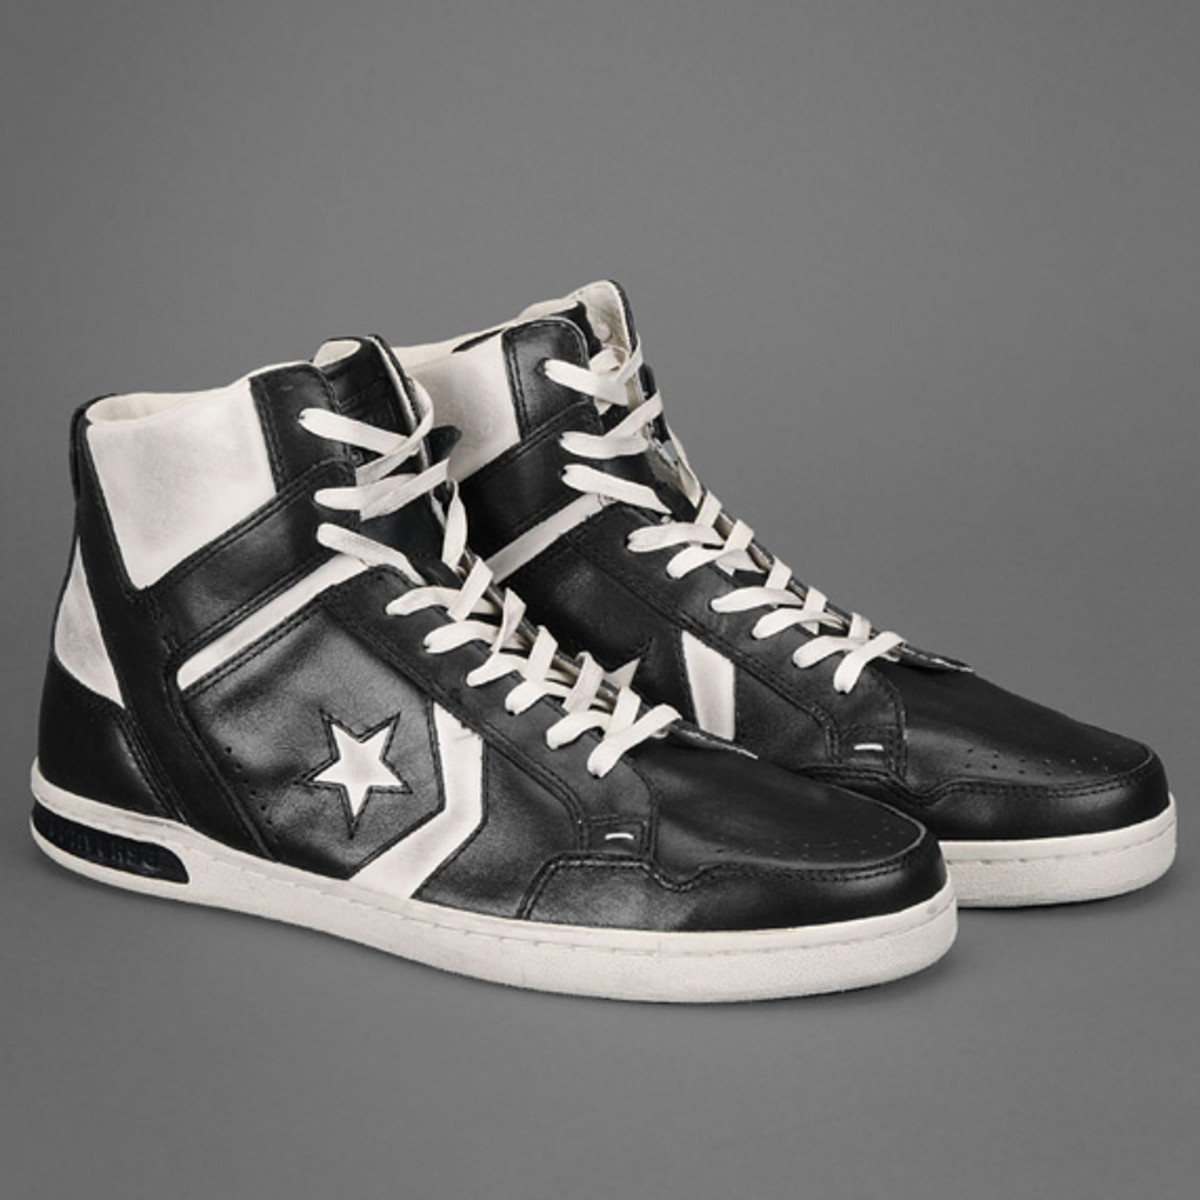 john-varvatos-converse-weapon-13